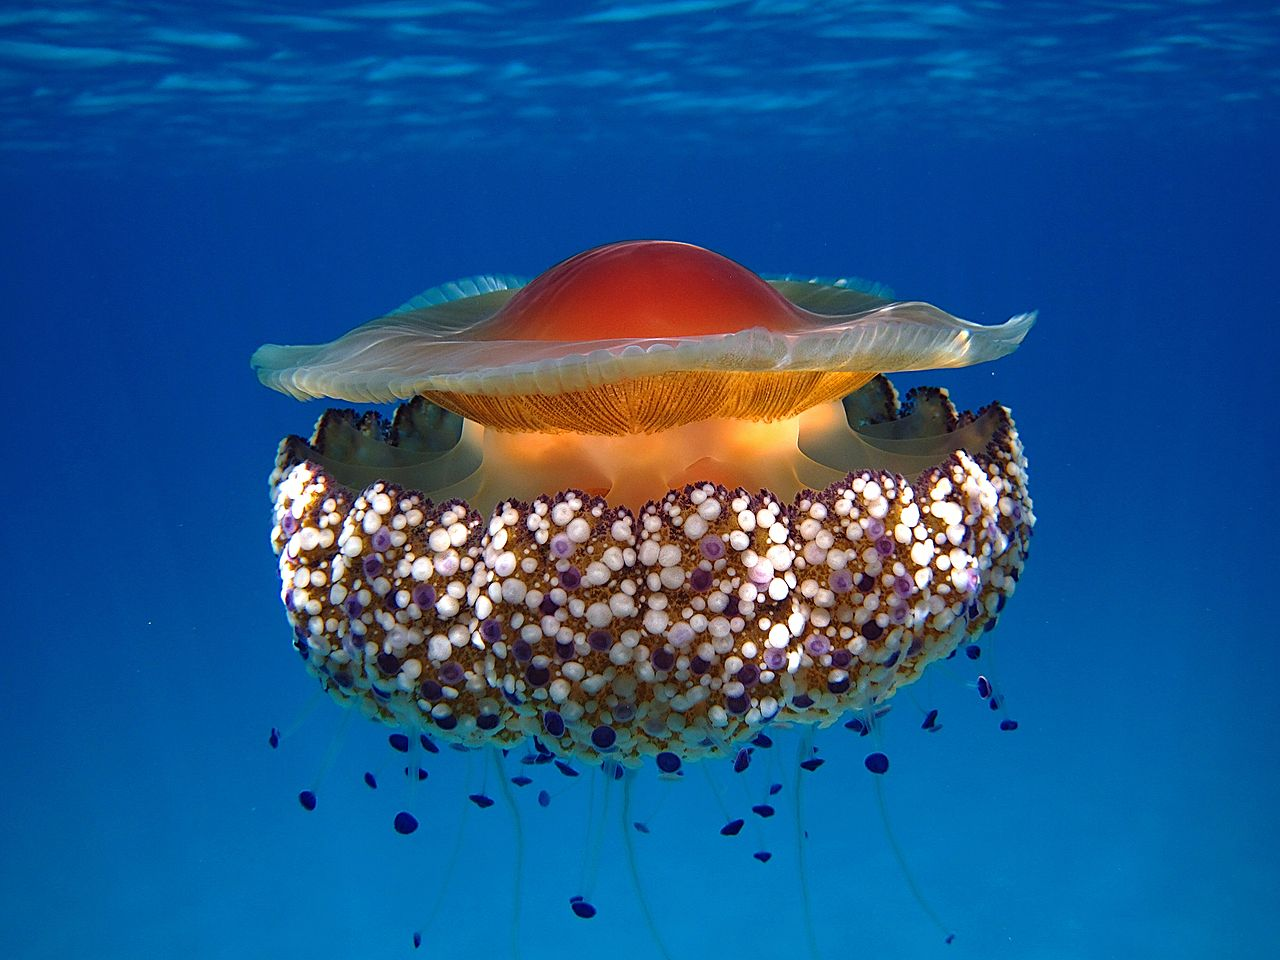 Fried egg jellyfish (Spiegelei jellyfish)